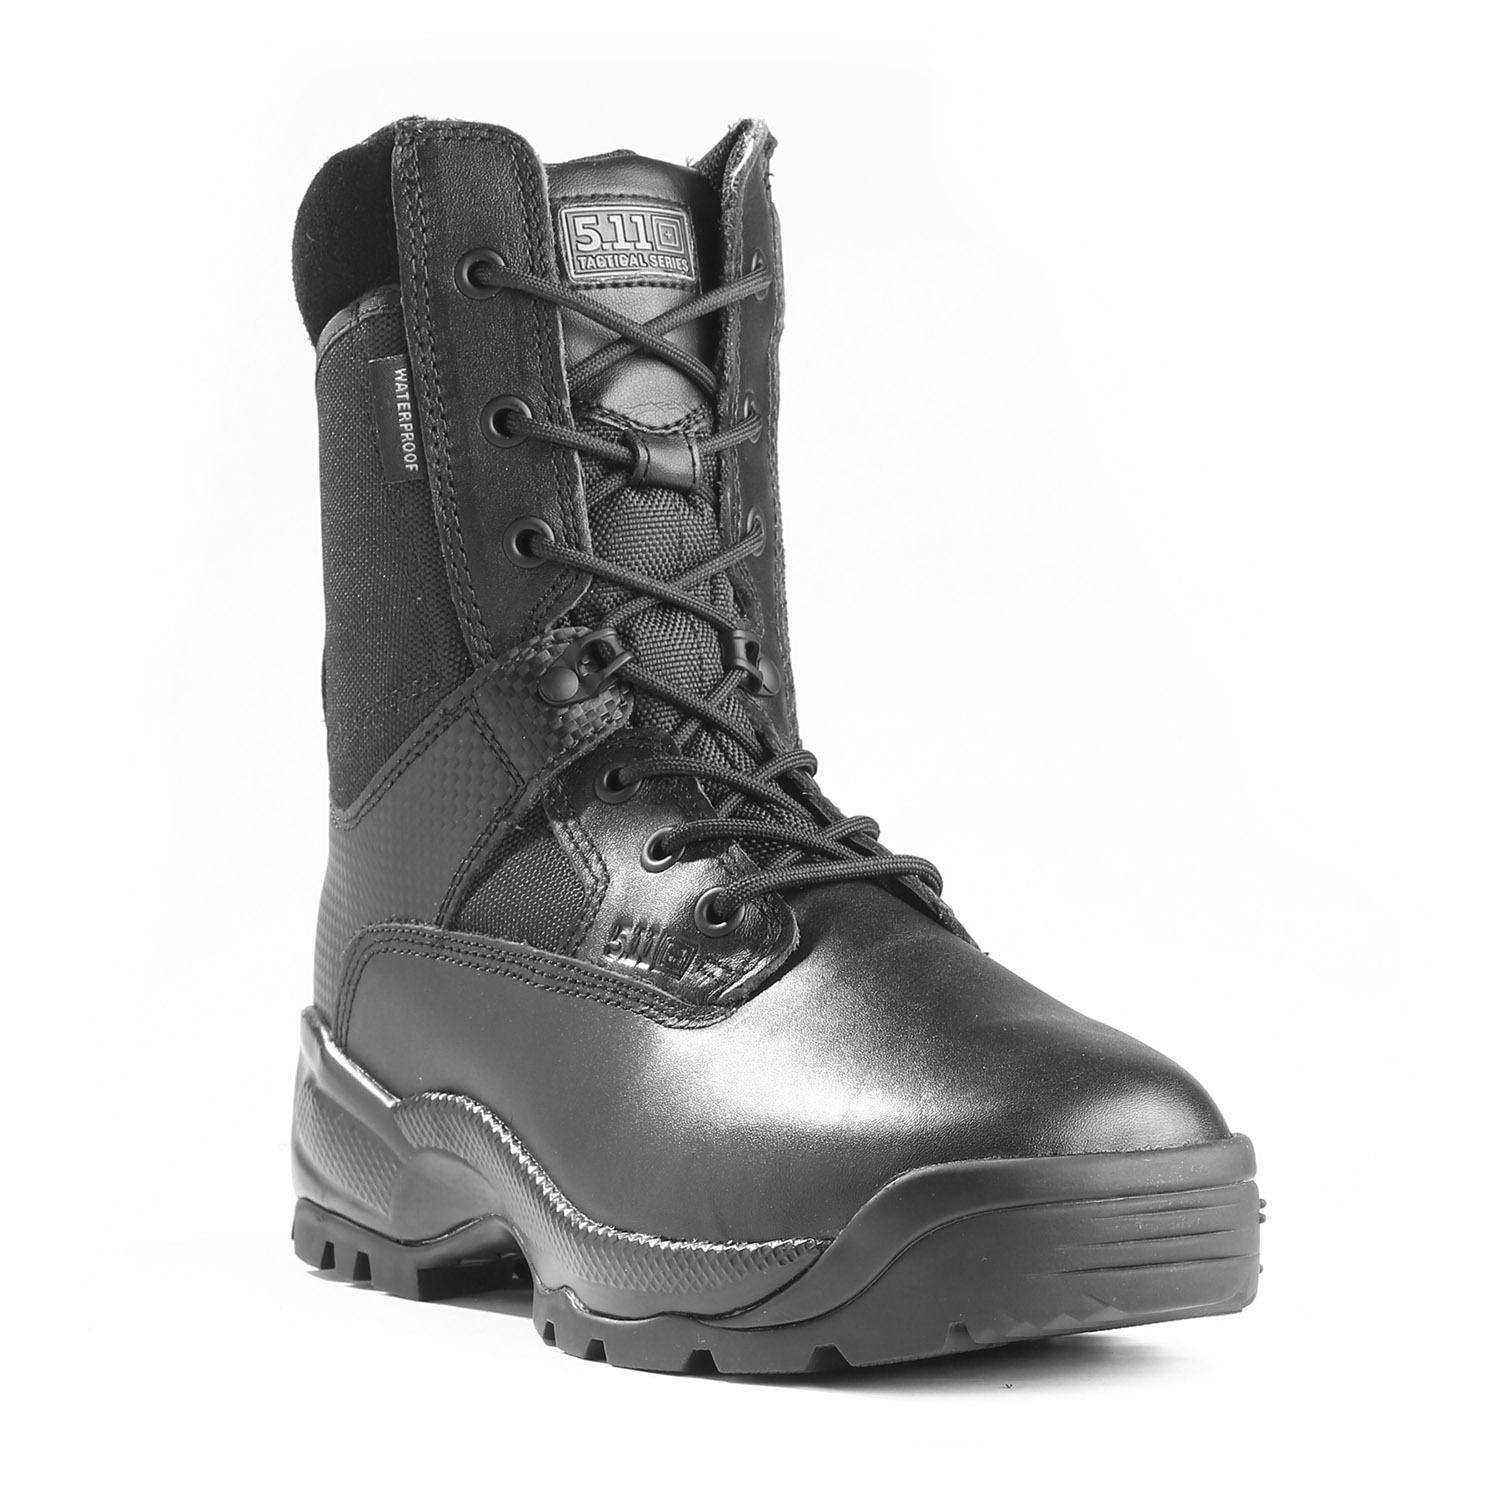 "5.11 Tactical 8"" ATAC Storm Zipper Waterproof Boot"